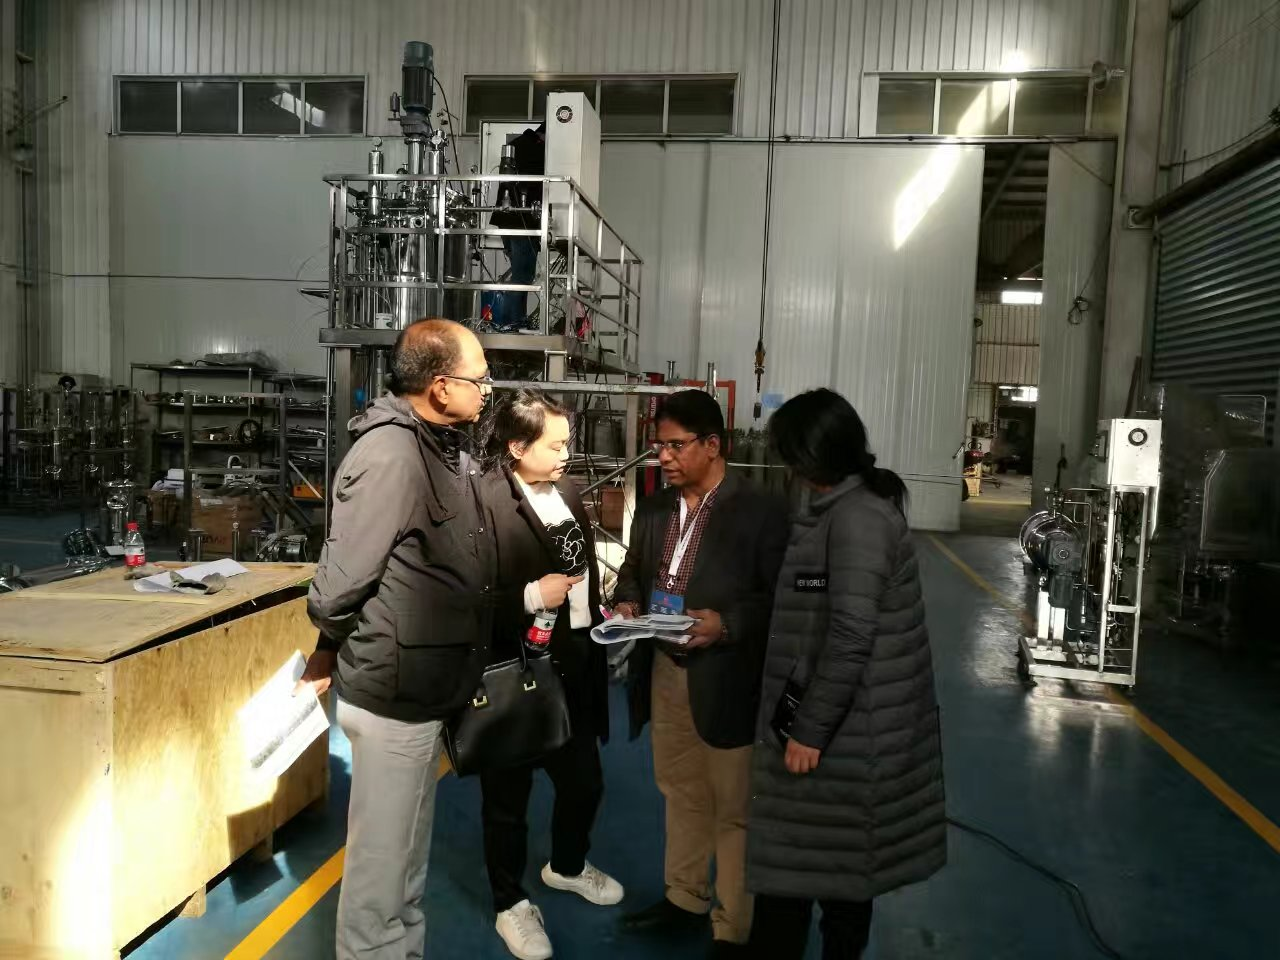 India customer visit 1000L stainless steel fermenter and solid fermenter